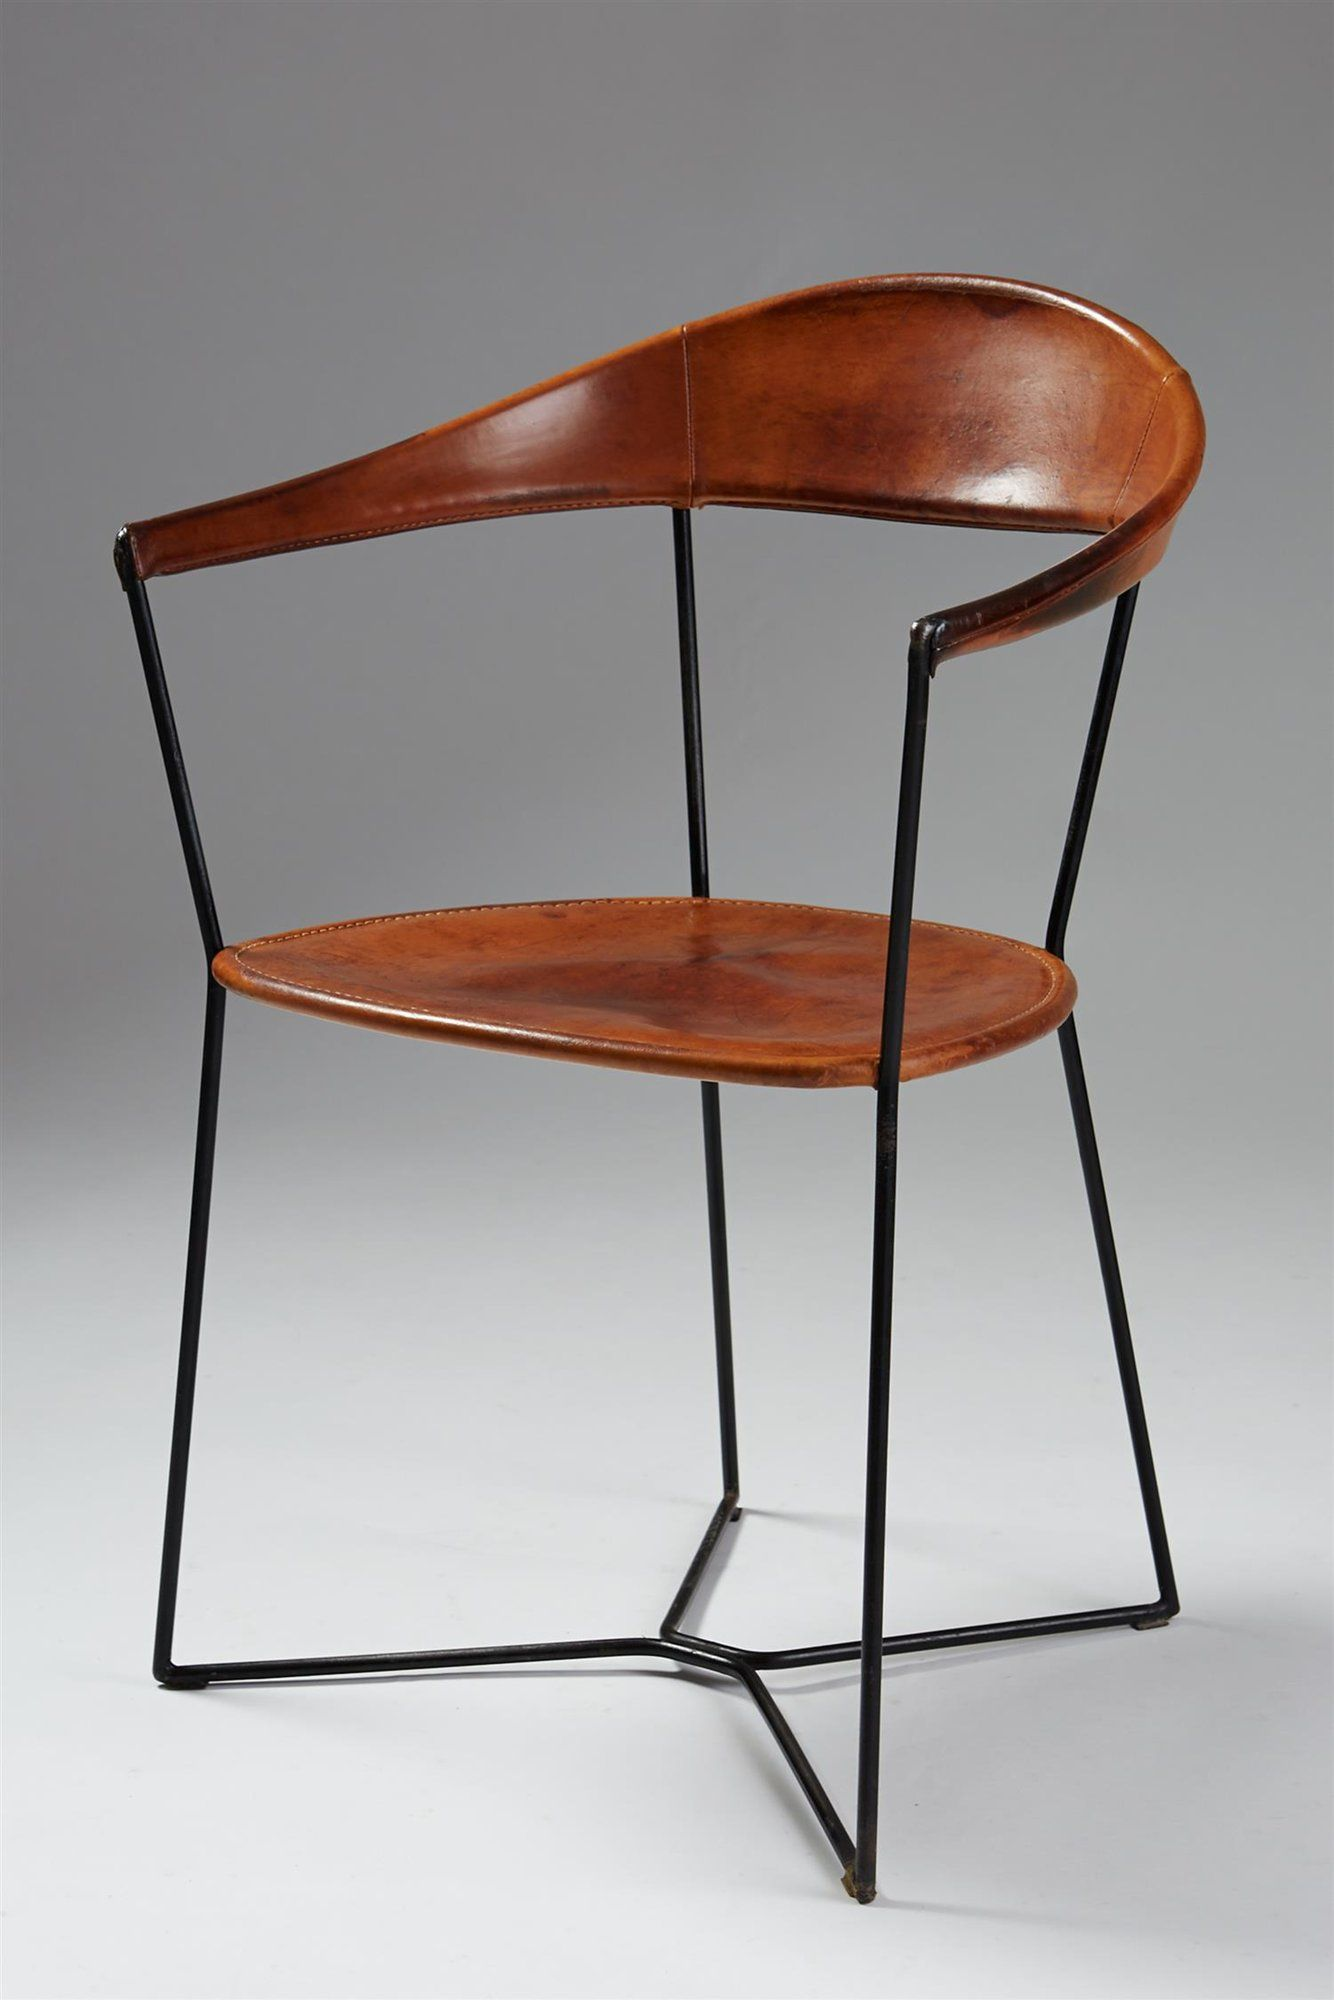 Ivar callmander leather lacquered steel chair 1930s vintage 1930s home